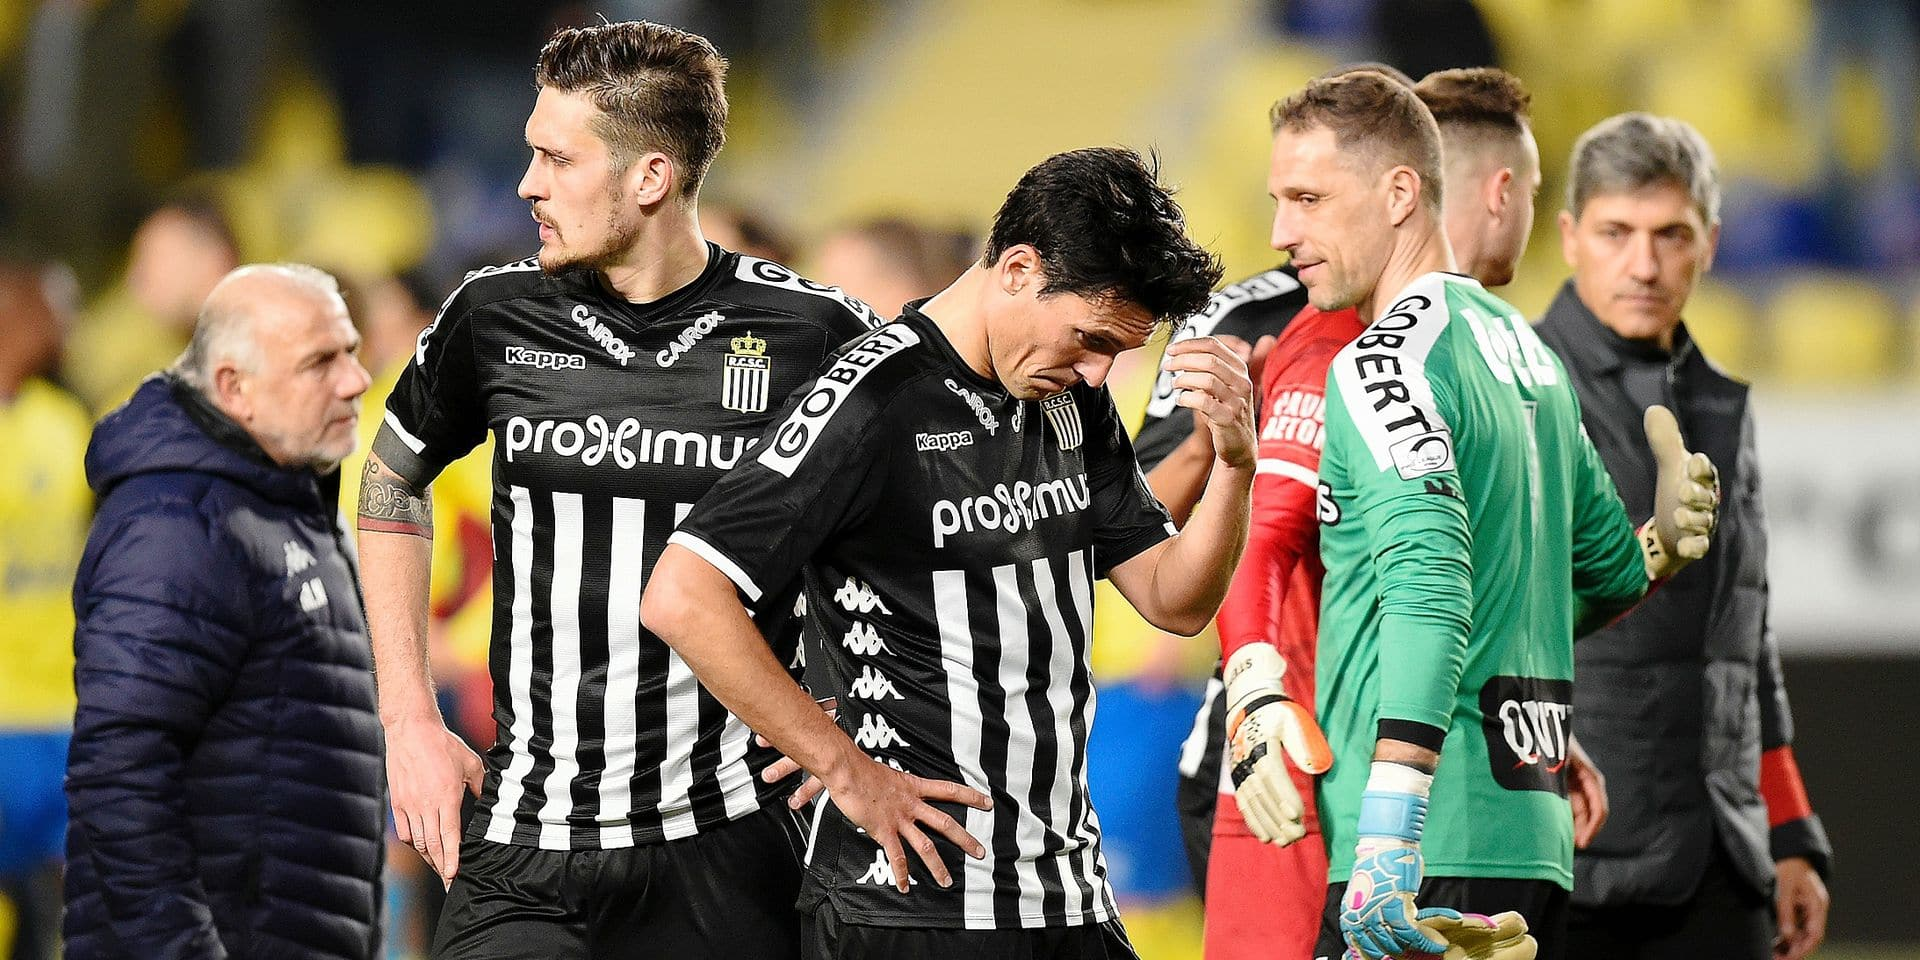 Charleroi's Jeremy Perbet, Charleroi's goalkeeper Nicolas Penneteau and Charleroi's head coach Felice Mazzu react during a soccer match between Sint-Truidense VV and Sporting Charleroi, Sunday 24 February 2019 in Sint-Truiden, on the 27th day of the 'Jupiler Pro League' Belgian soccer championship season 2018-2019. BELGA PHOTO JOHN THYS